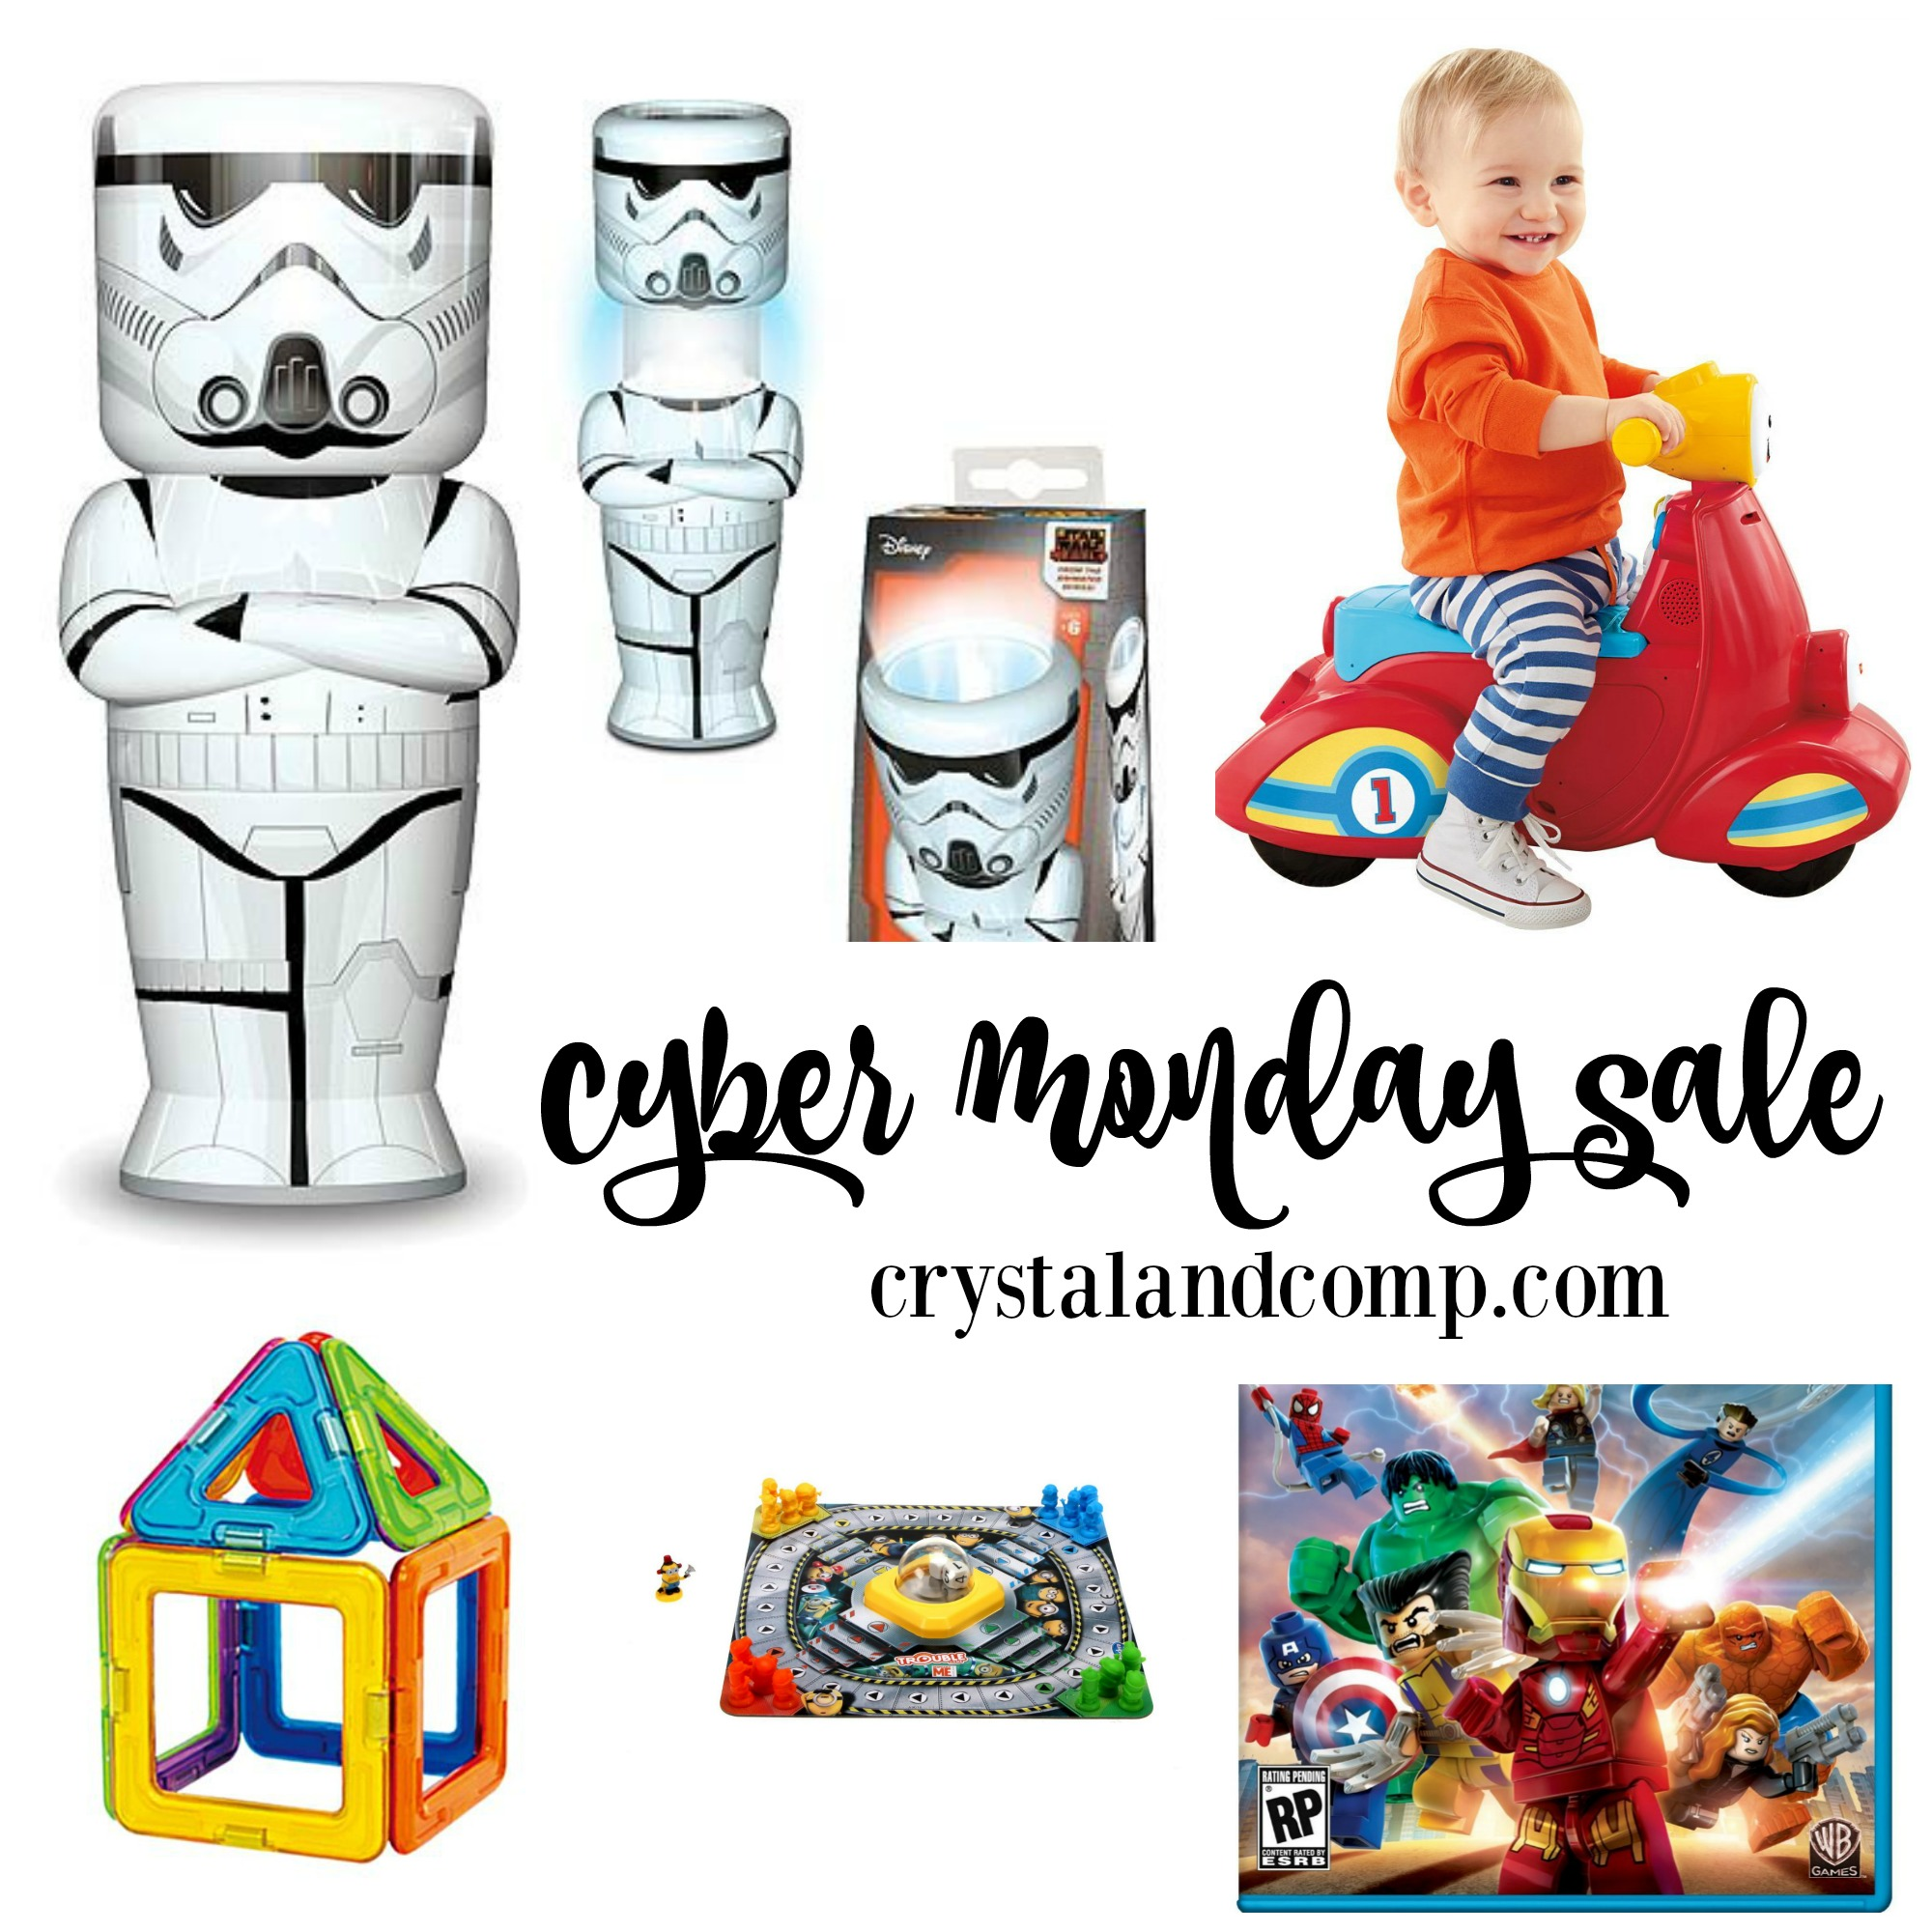 Cyber Monday Deals You Don T Want To Miss Crystalandcomp Com